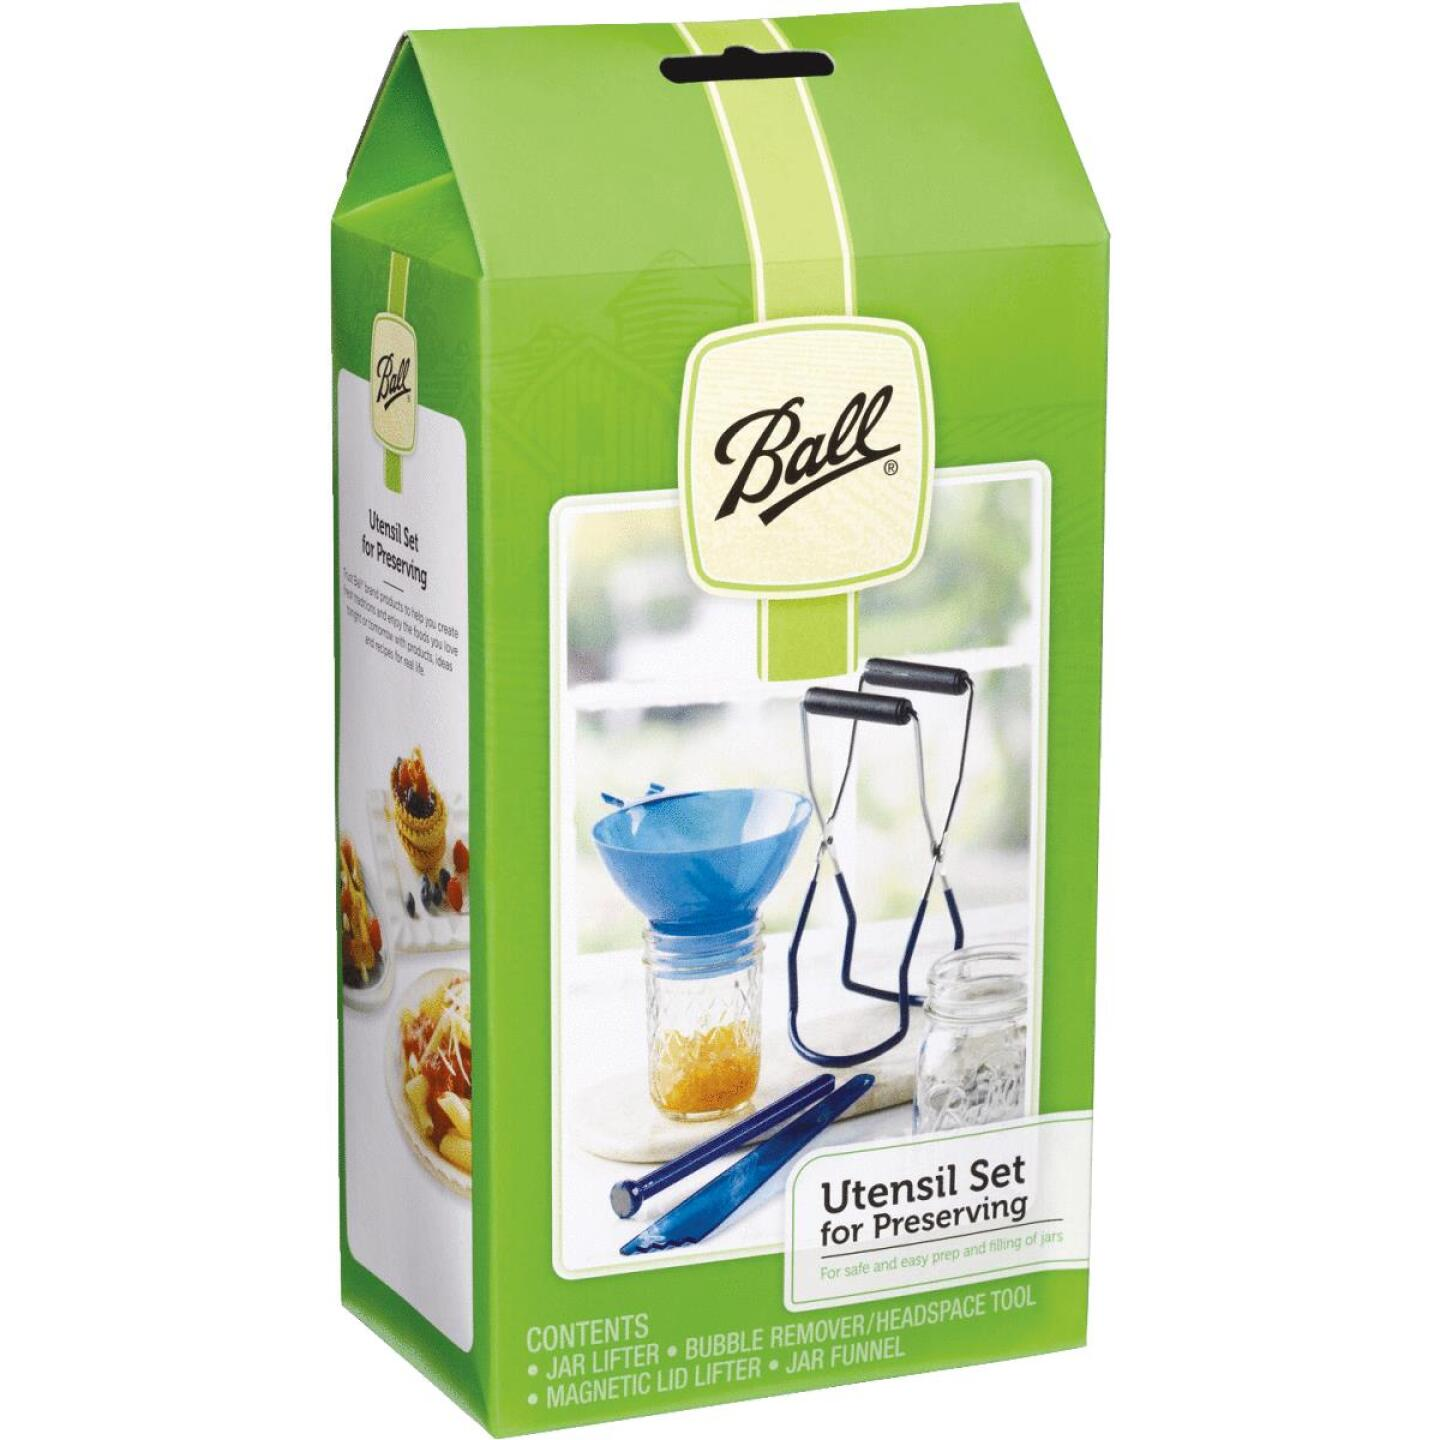 Ball Canning Utensil Set (4-Piece) Image 1